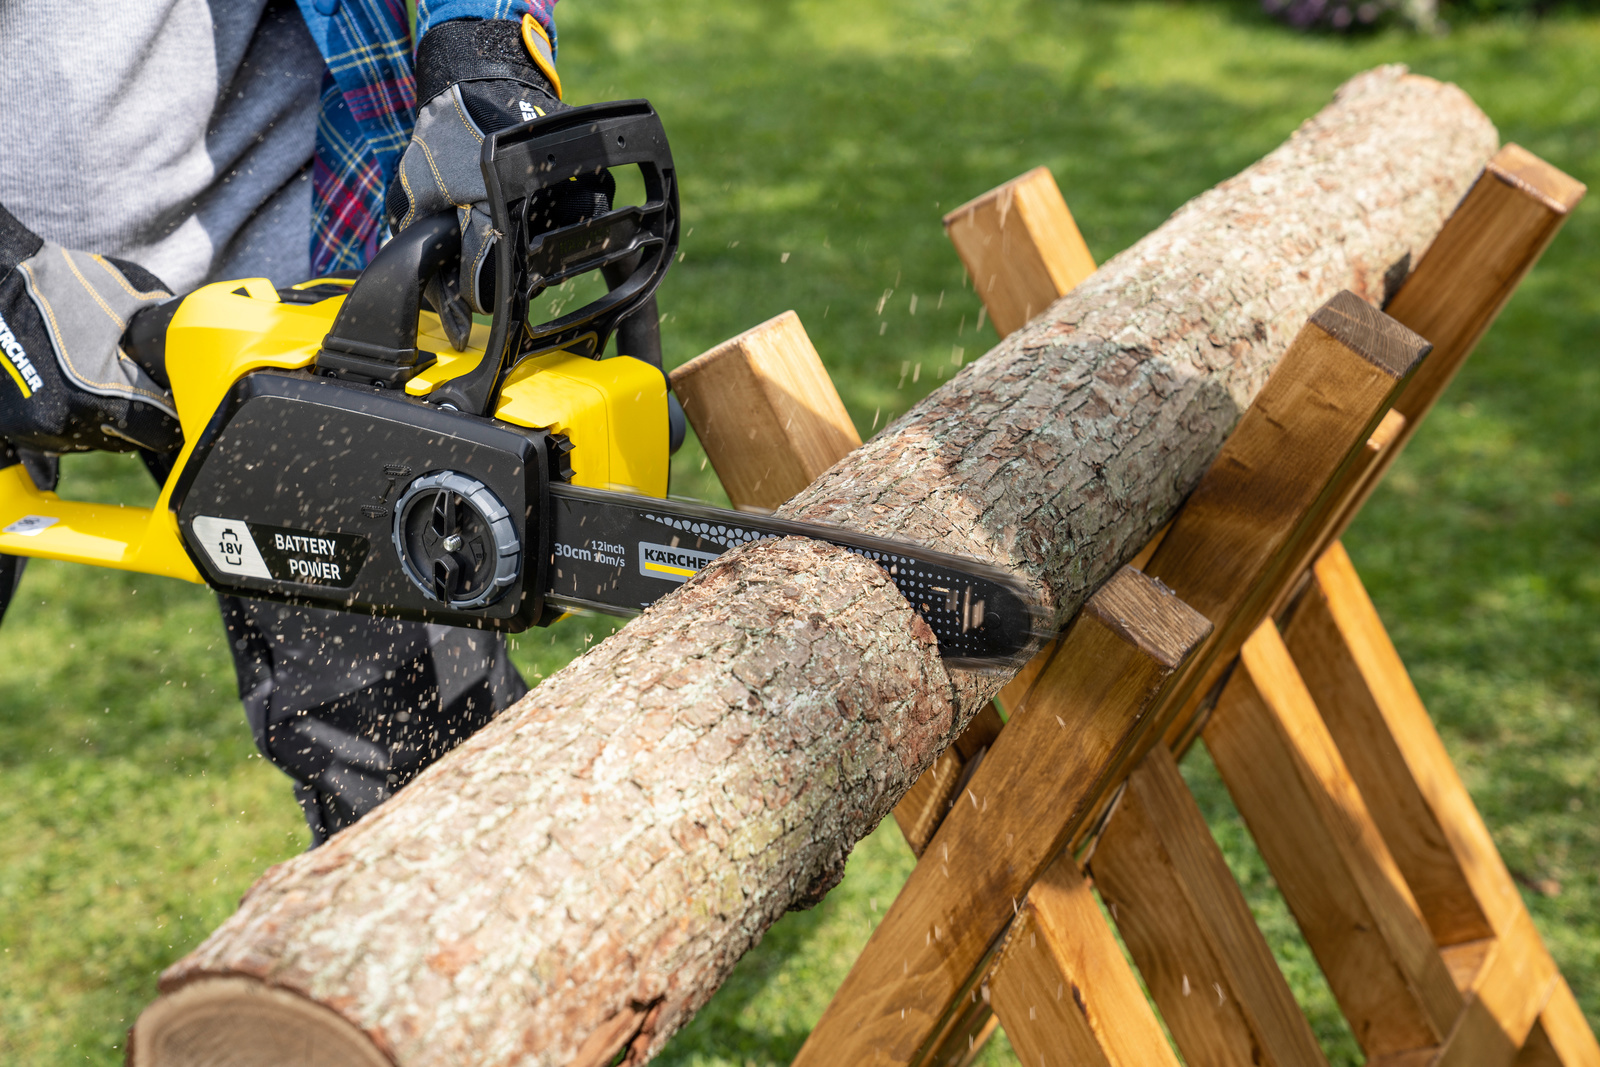 Karcher S Cns Range Battery Powered Chain Saws For Home Users Karcher International